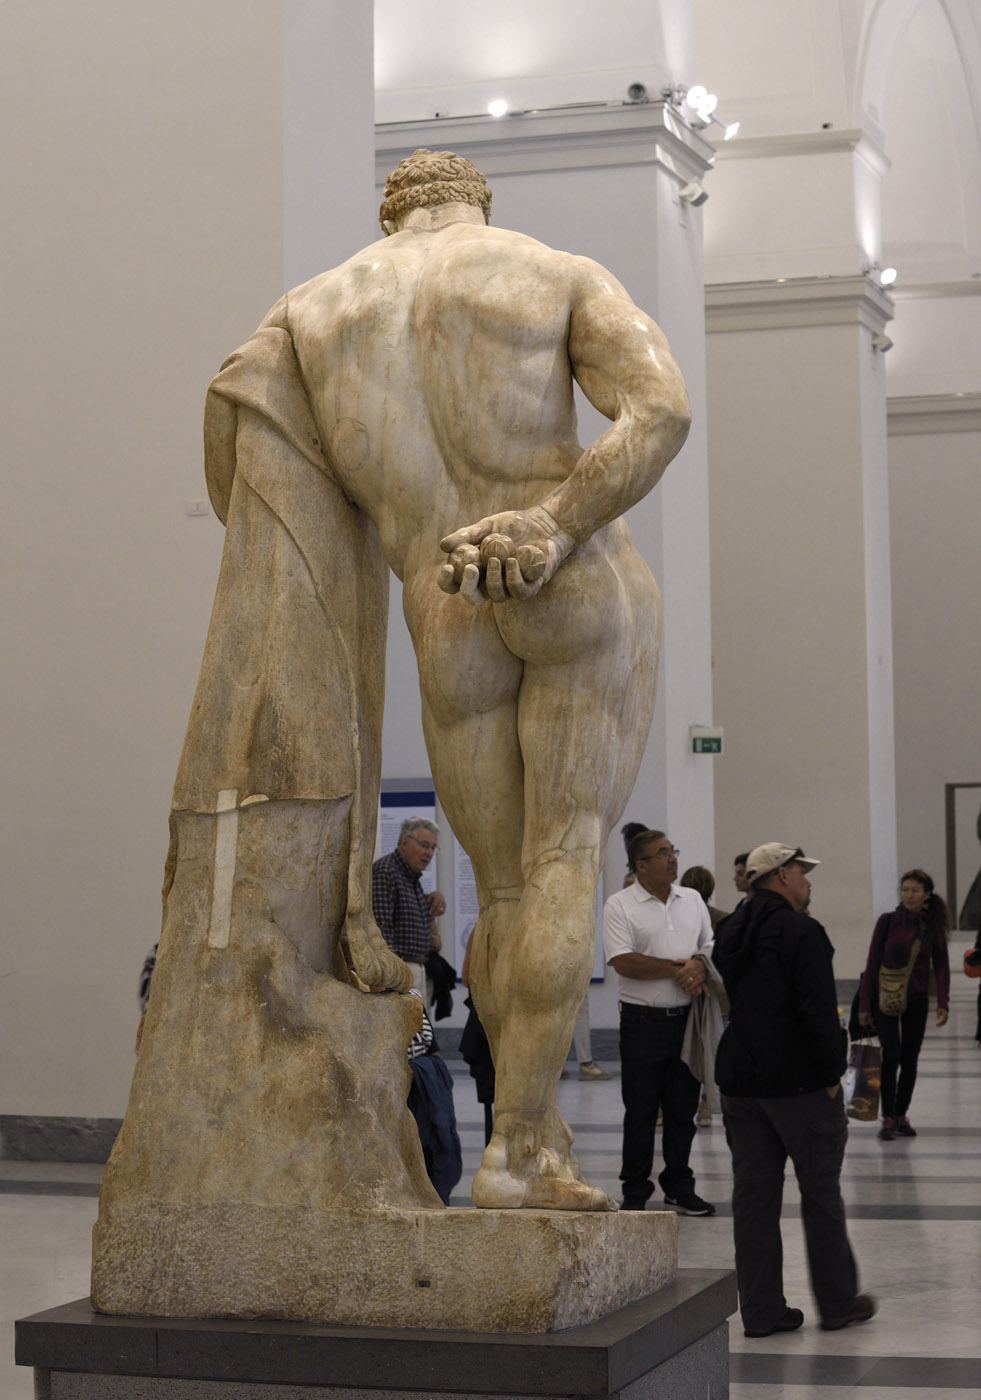 Hercules at rest (Farnese-Pitti type). Marble. Roman work of the late 2nd — early 3rd cent. CE after a bronze original by Lysippos of the second half of the 4th century BCE. Inv. No. 6001. Naples, National Archaeological Museum